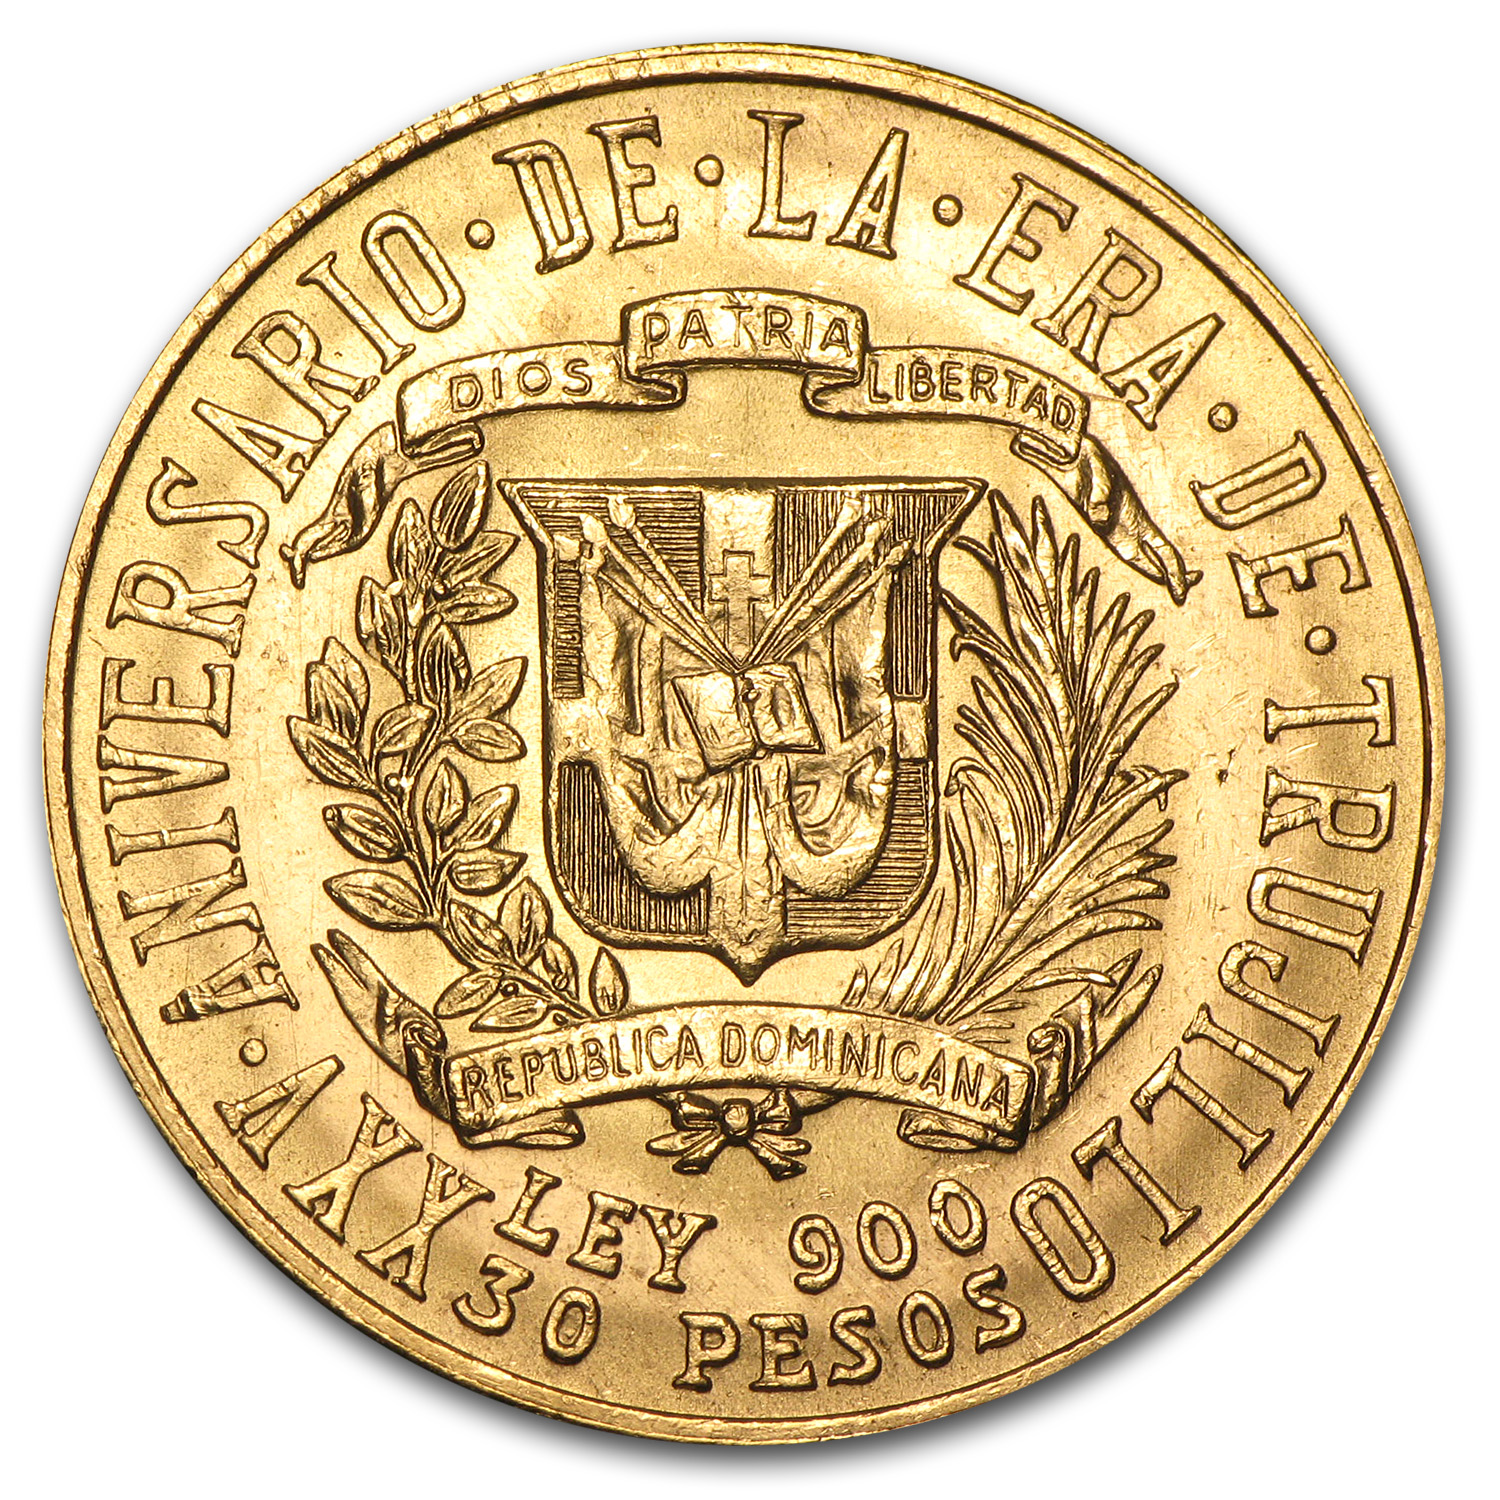 1955 Dominican Republic Gold 30 Pesos Rafael Trujillo BU